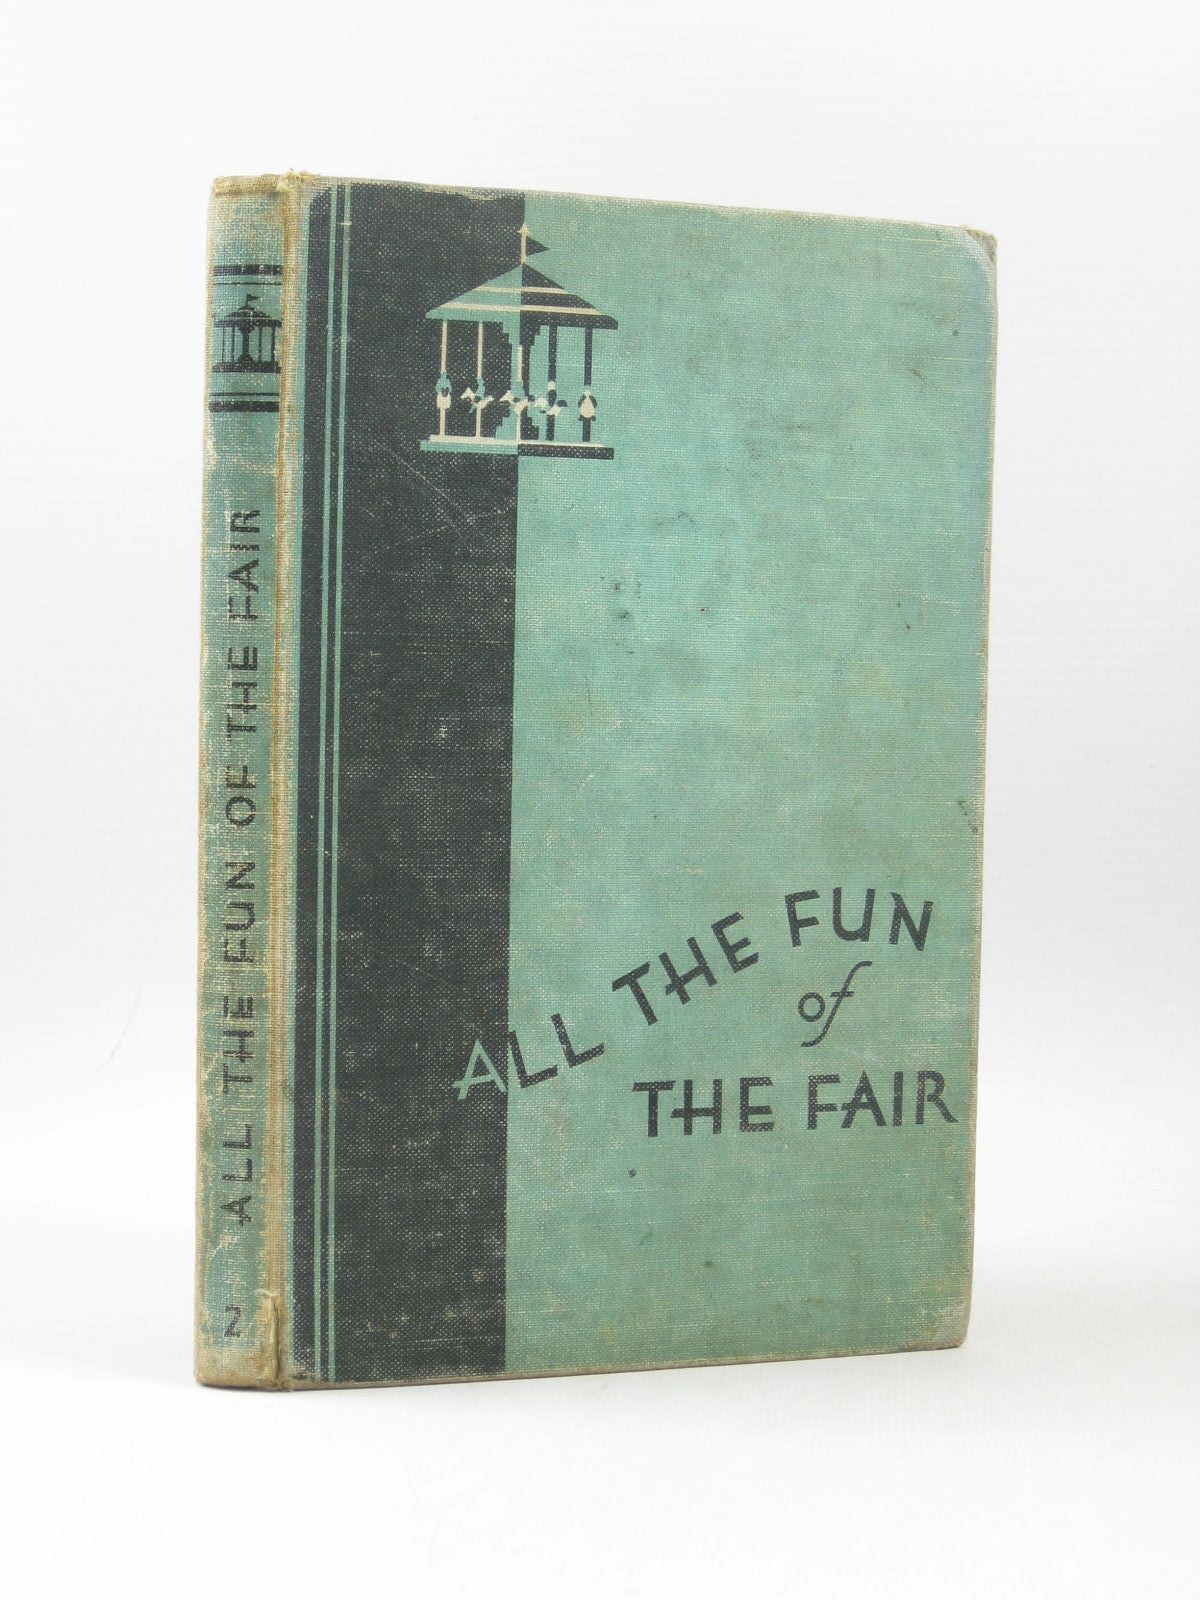 Photo of ALL THE FUN OF THE FAIR written by Bradham, C. illustrated by Cable, W. Lindsay published by A. Wheaton & Co. Ltd. (STOCK CODE: 1503816)  for sale by Stella & Rose's Books